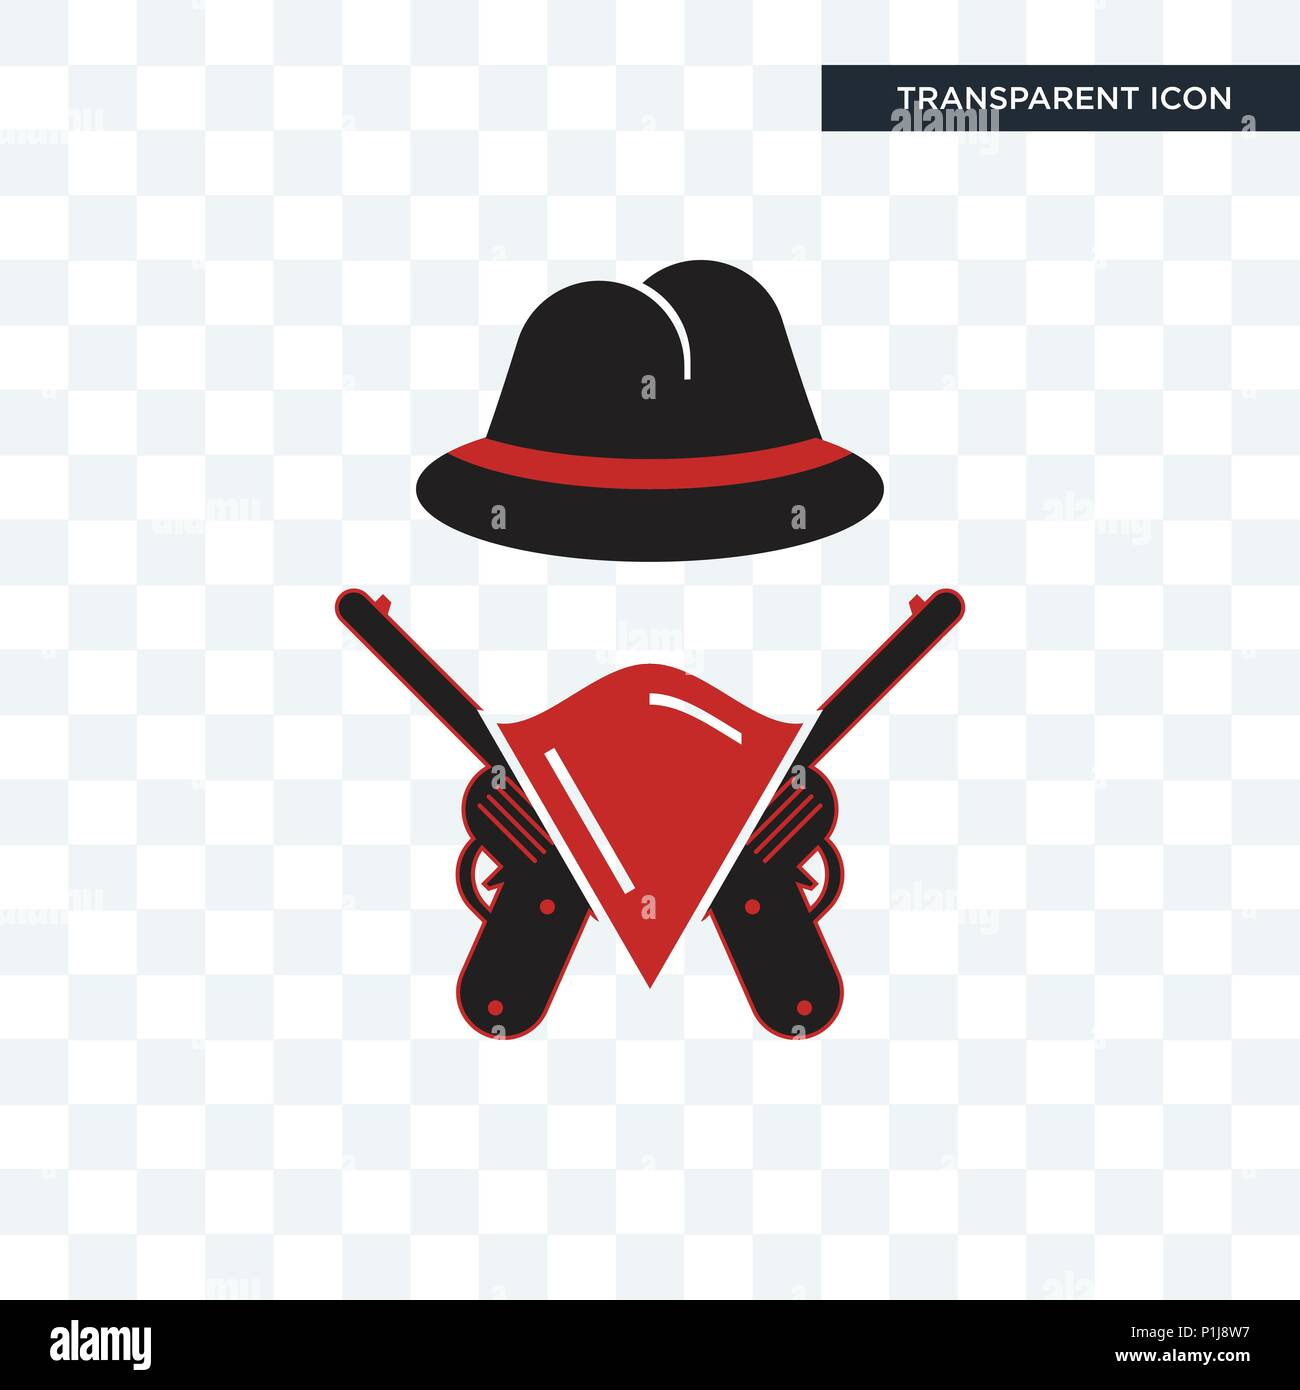 outlaws vector icon isolated on transparent background